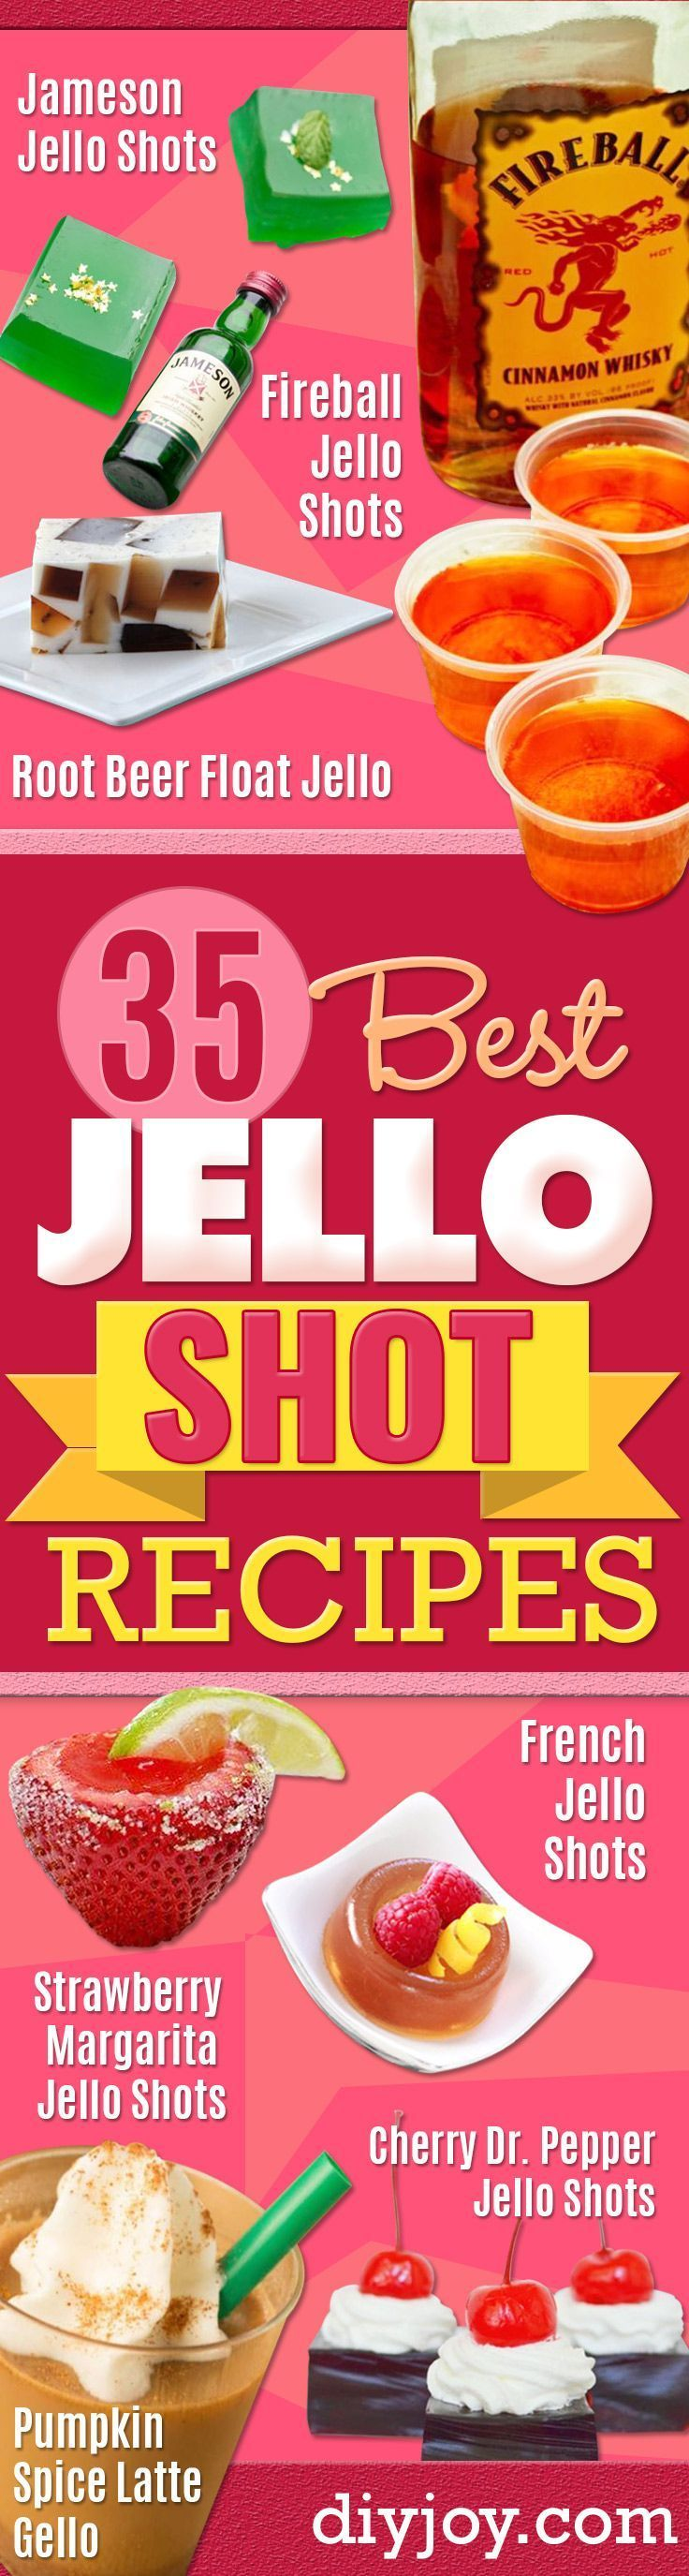 Best Jello Shot Recipes - Easy Jello Shots Recipe Ideas with Vodka, Strawberry, Tequila, Rum, Jolly Rancher and Creative Alcohol - Unique and Fun Drinks for Parties like Whiskey Fireball, Fall Halloween Versions, Malibu, 4th of July, Birthday, Summer, Christmas and Birthdays http://diyjoy.com/best-jello-shot-recipes #christmasparties #vodkadrinks